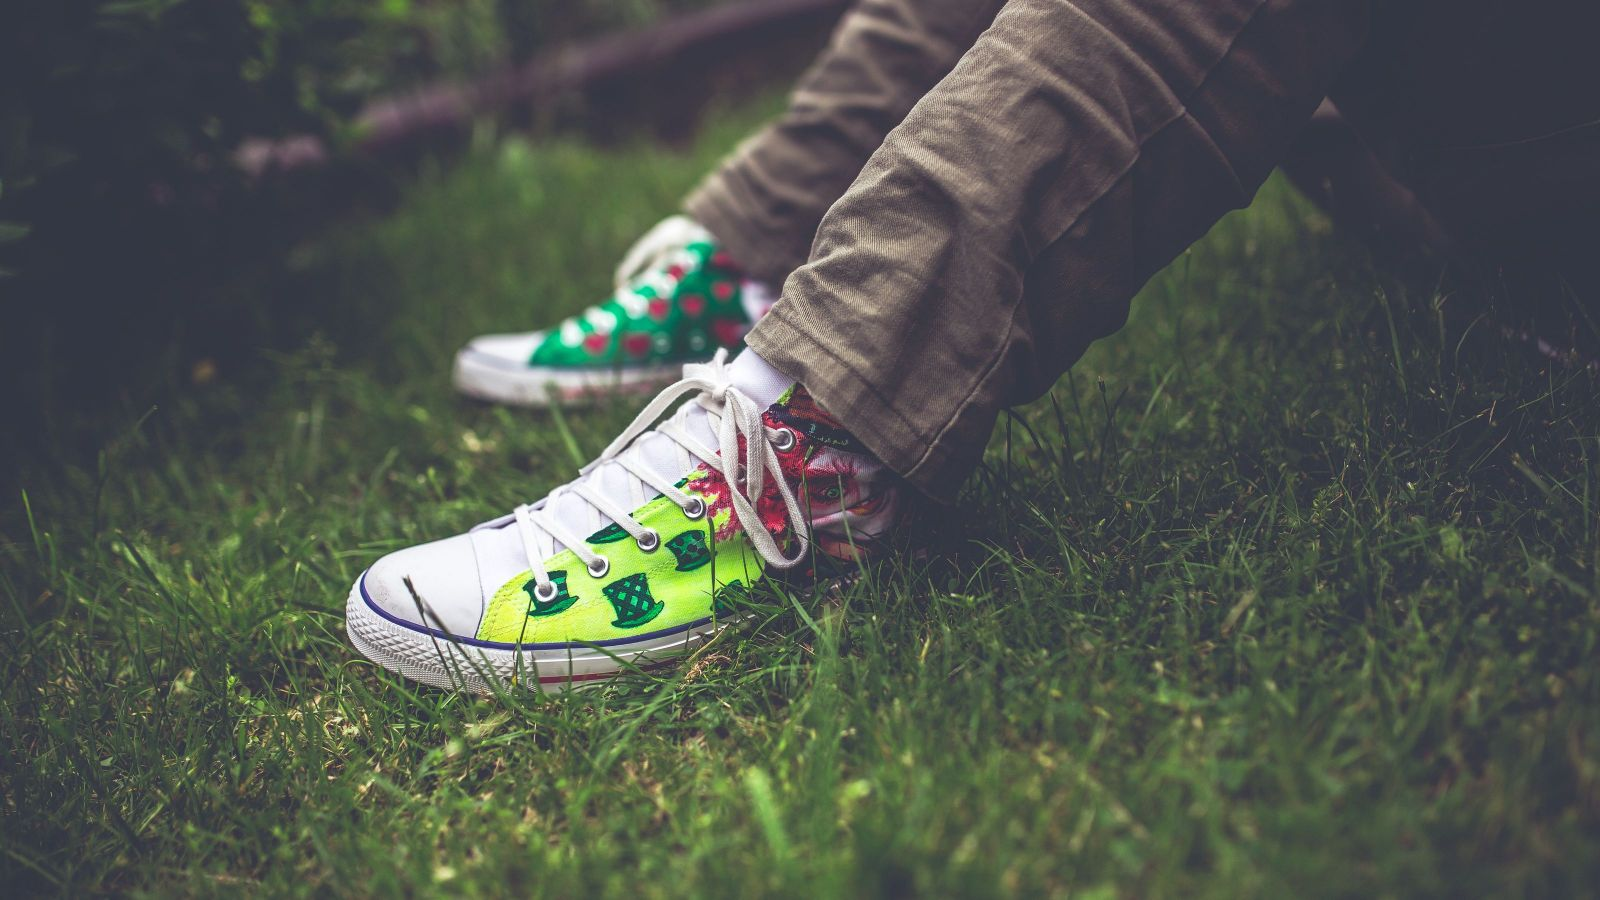 white and green sneakers worn by someone sitting with their feet on the lawn, close up of the feet